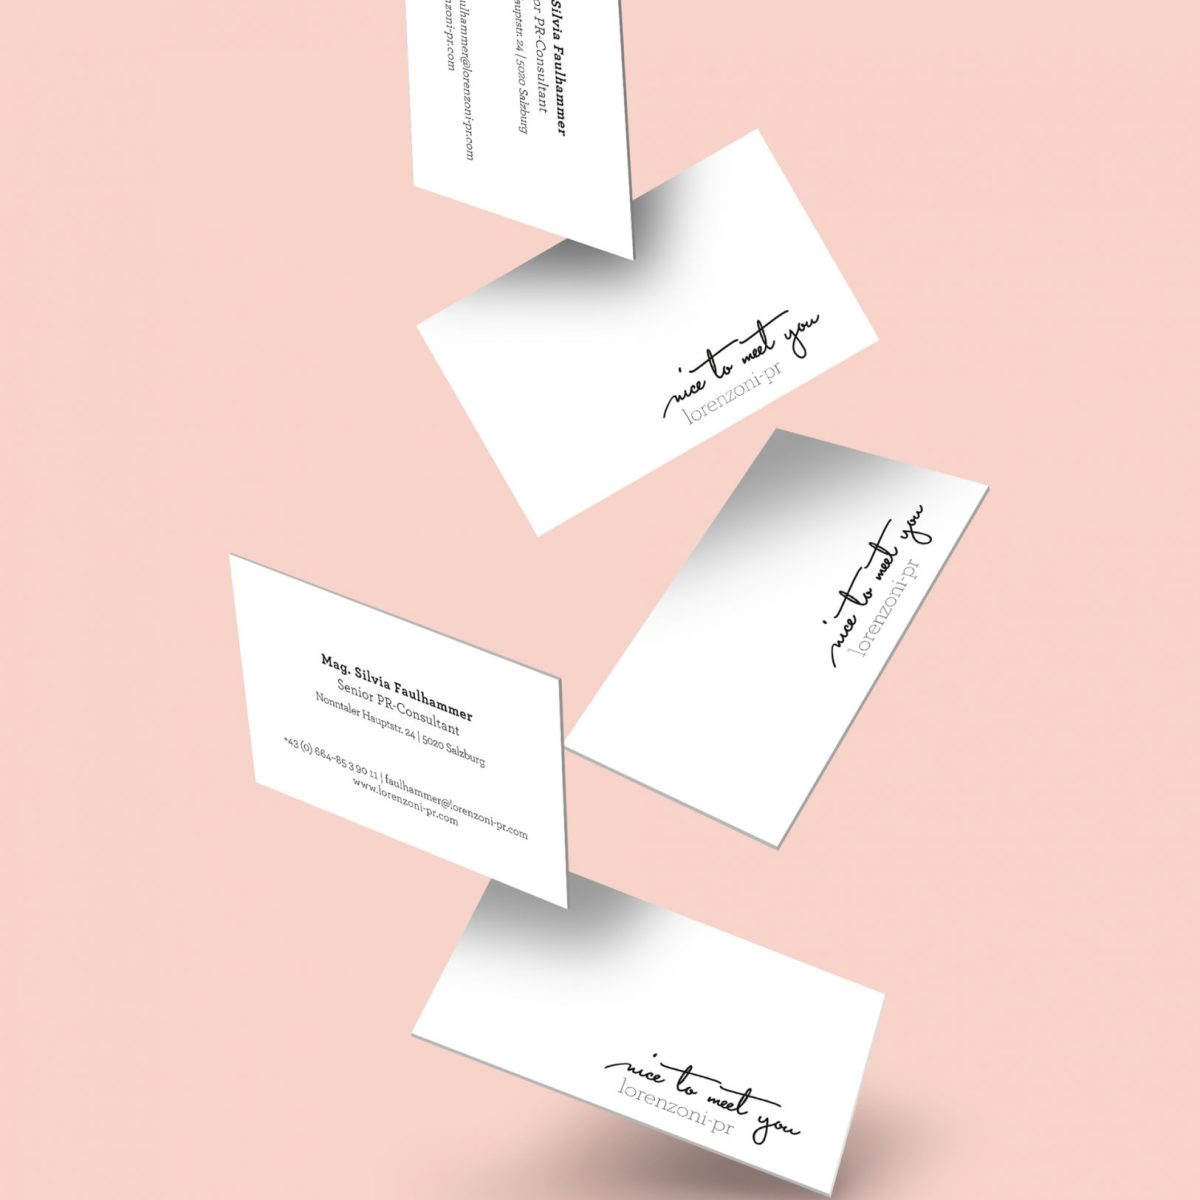 lorenzoni-pr-business-card-visitenkarte-nice-to-meet-you